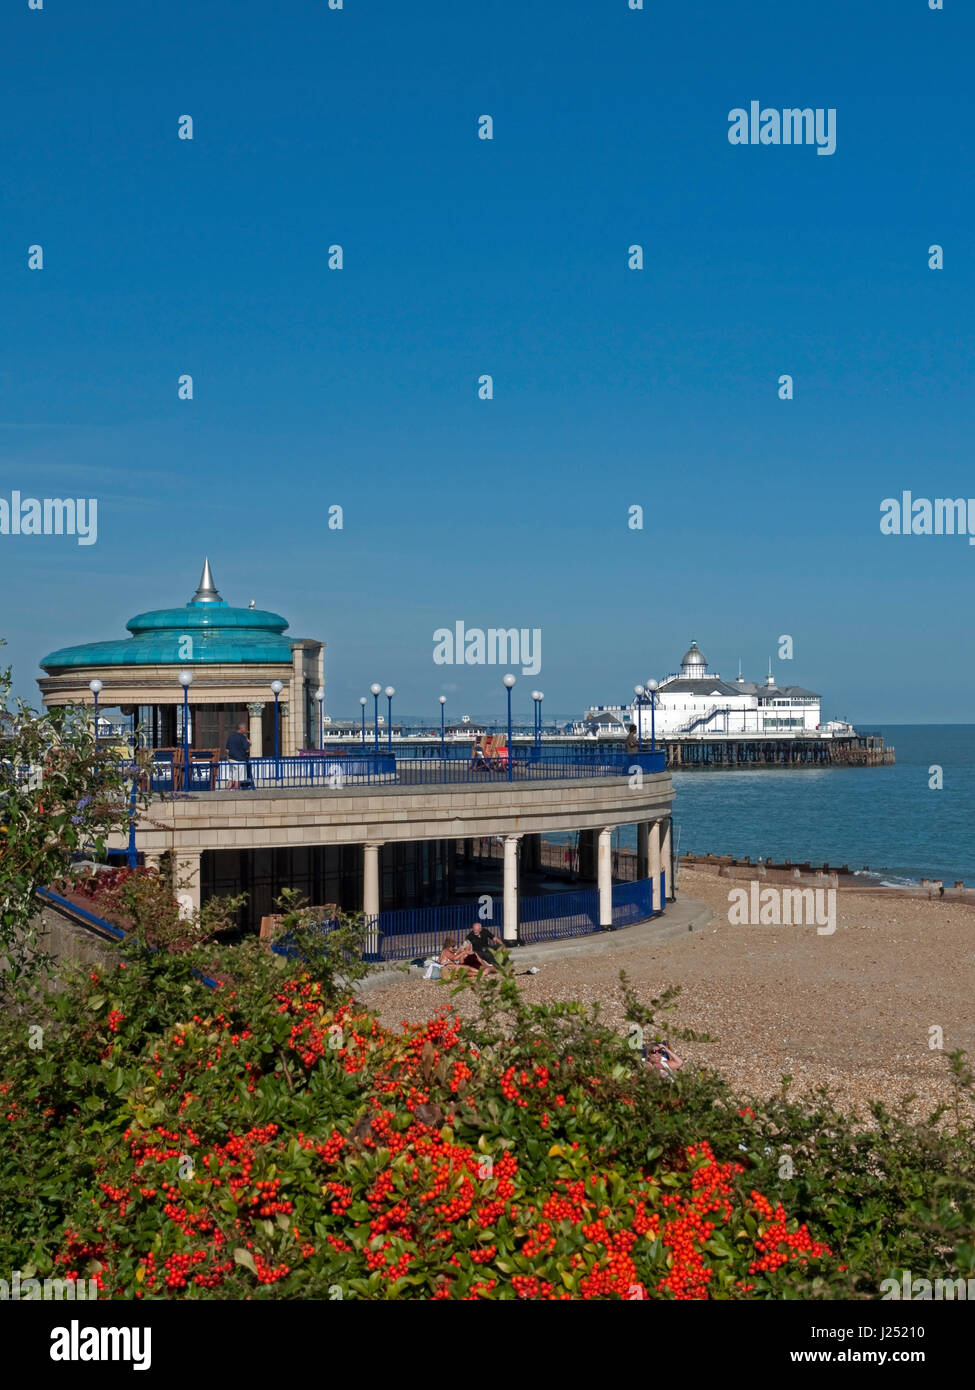 The Colourful Eastbourne Seafront with its iconic Bandstand and Pier, Eastbourne, East Sussex, England, UK - Stock Image